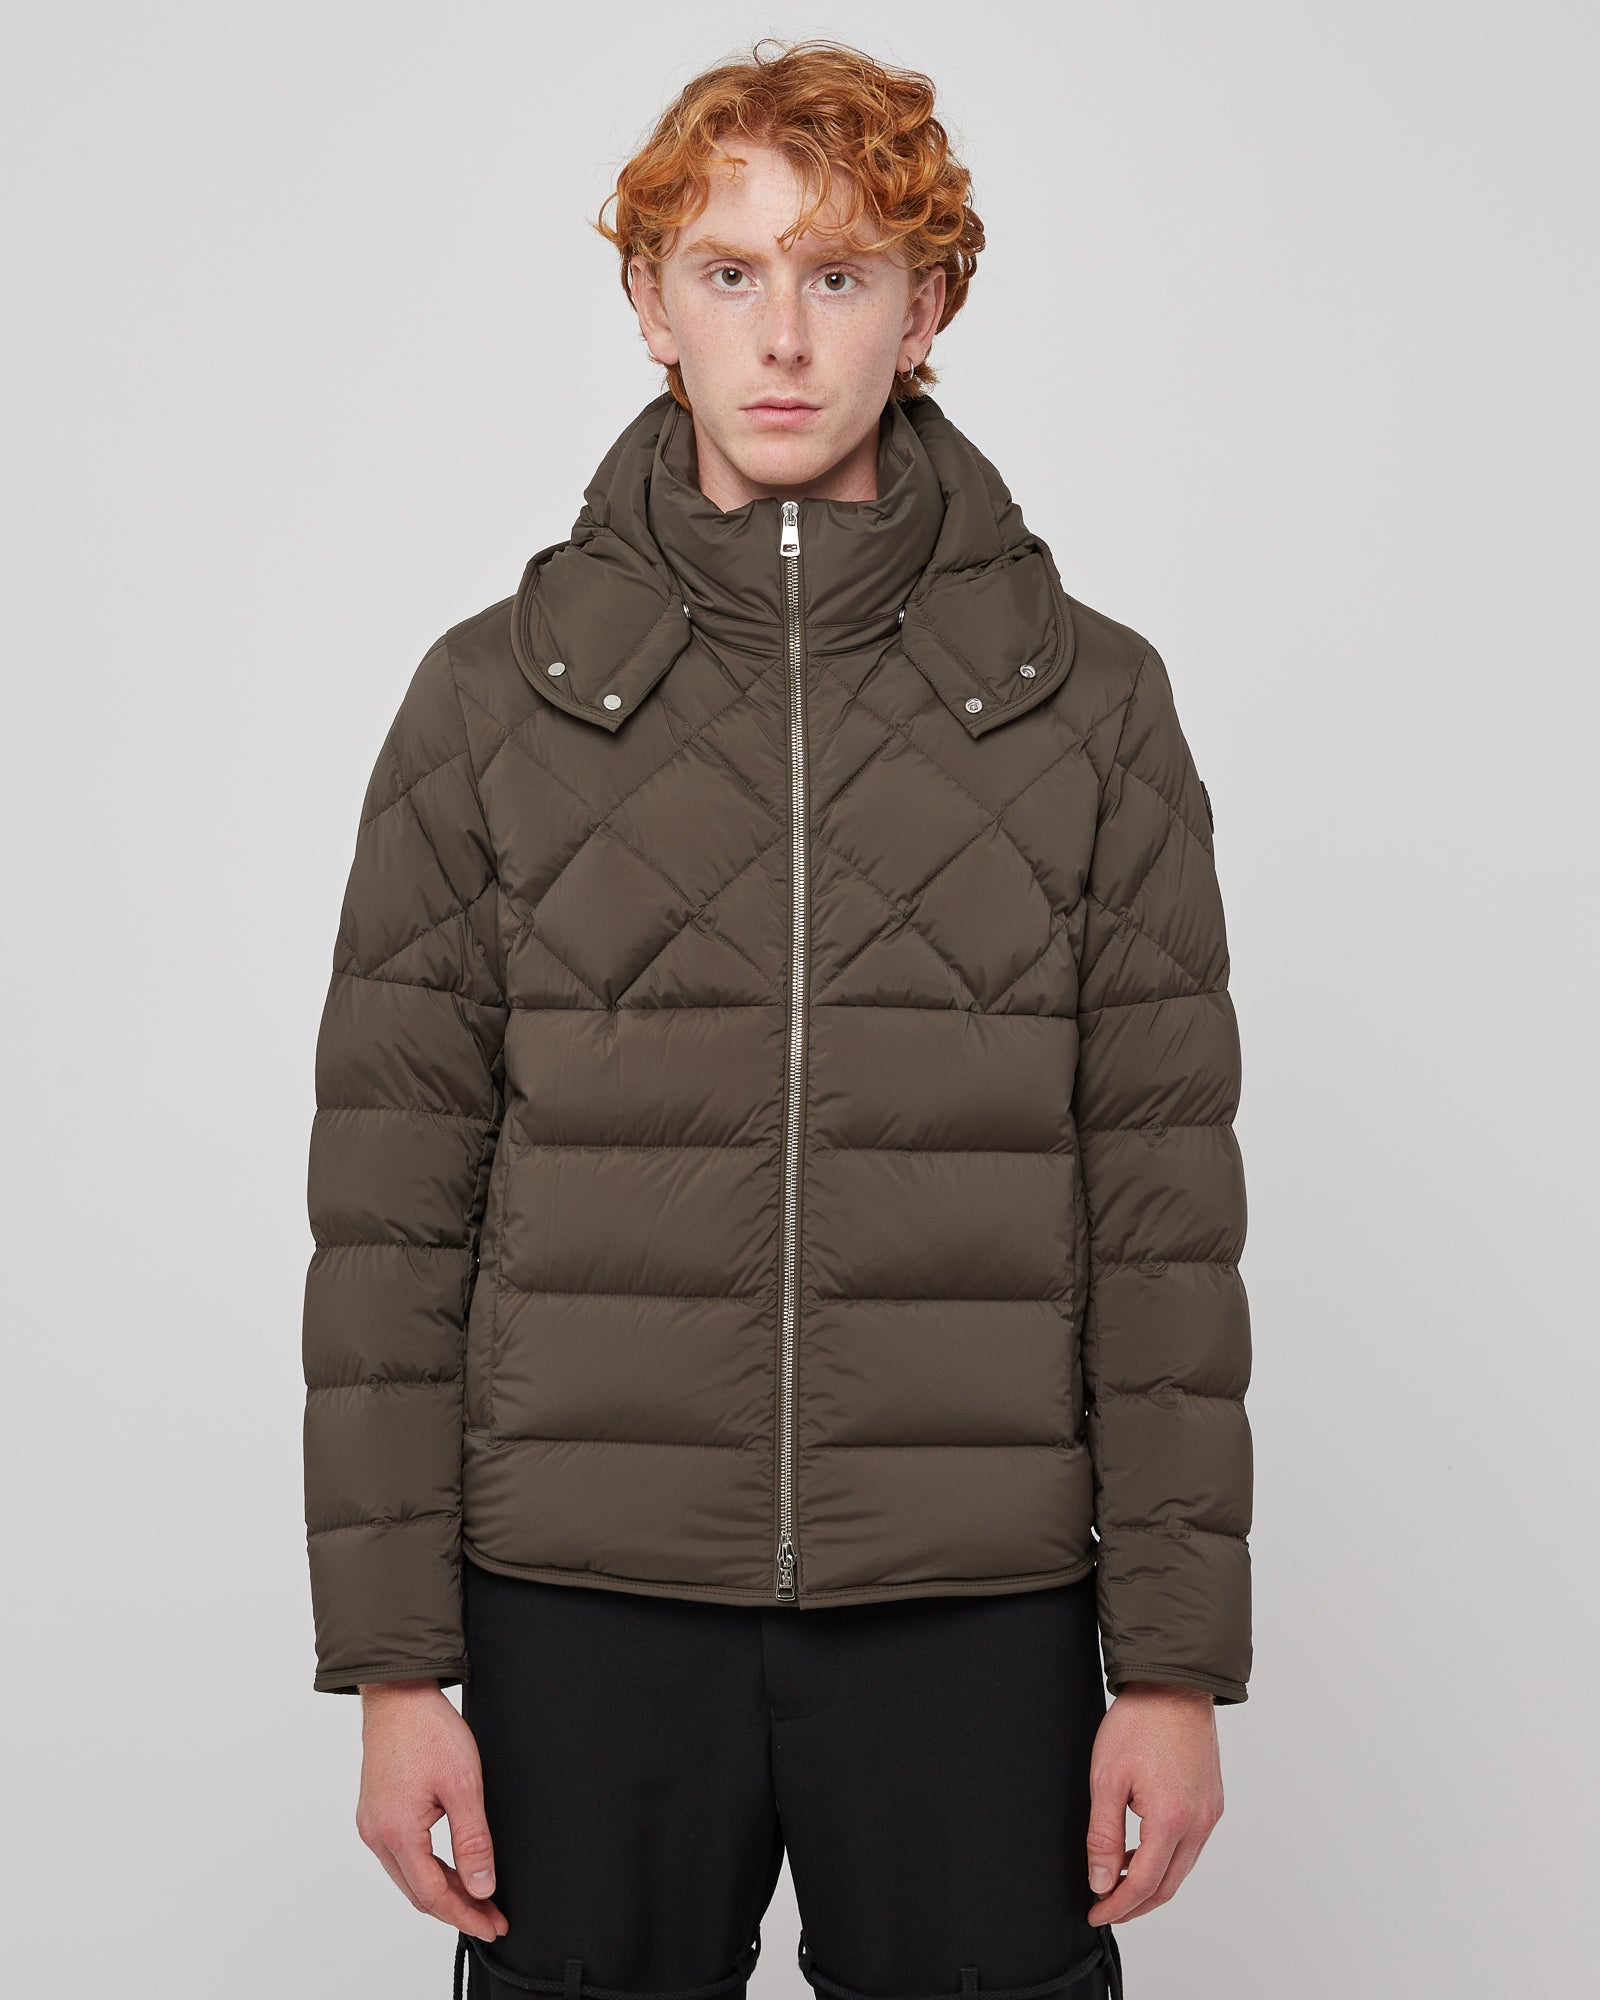 Cecaud Jacket in Olive